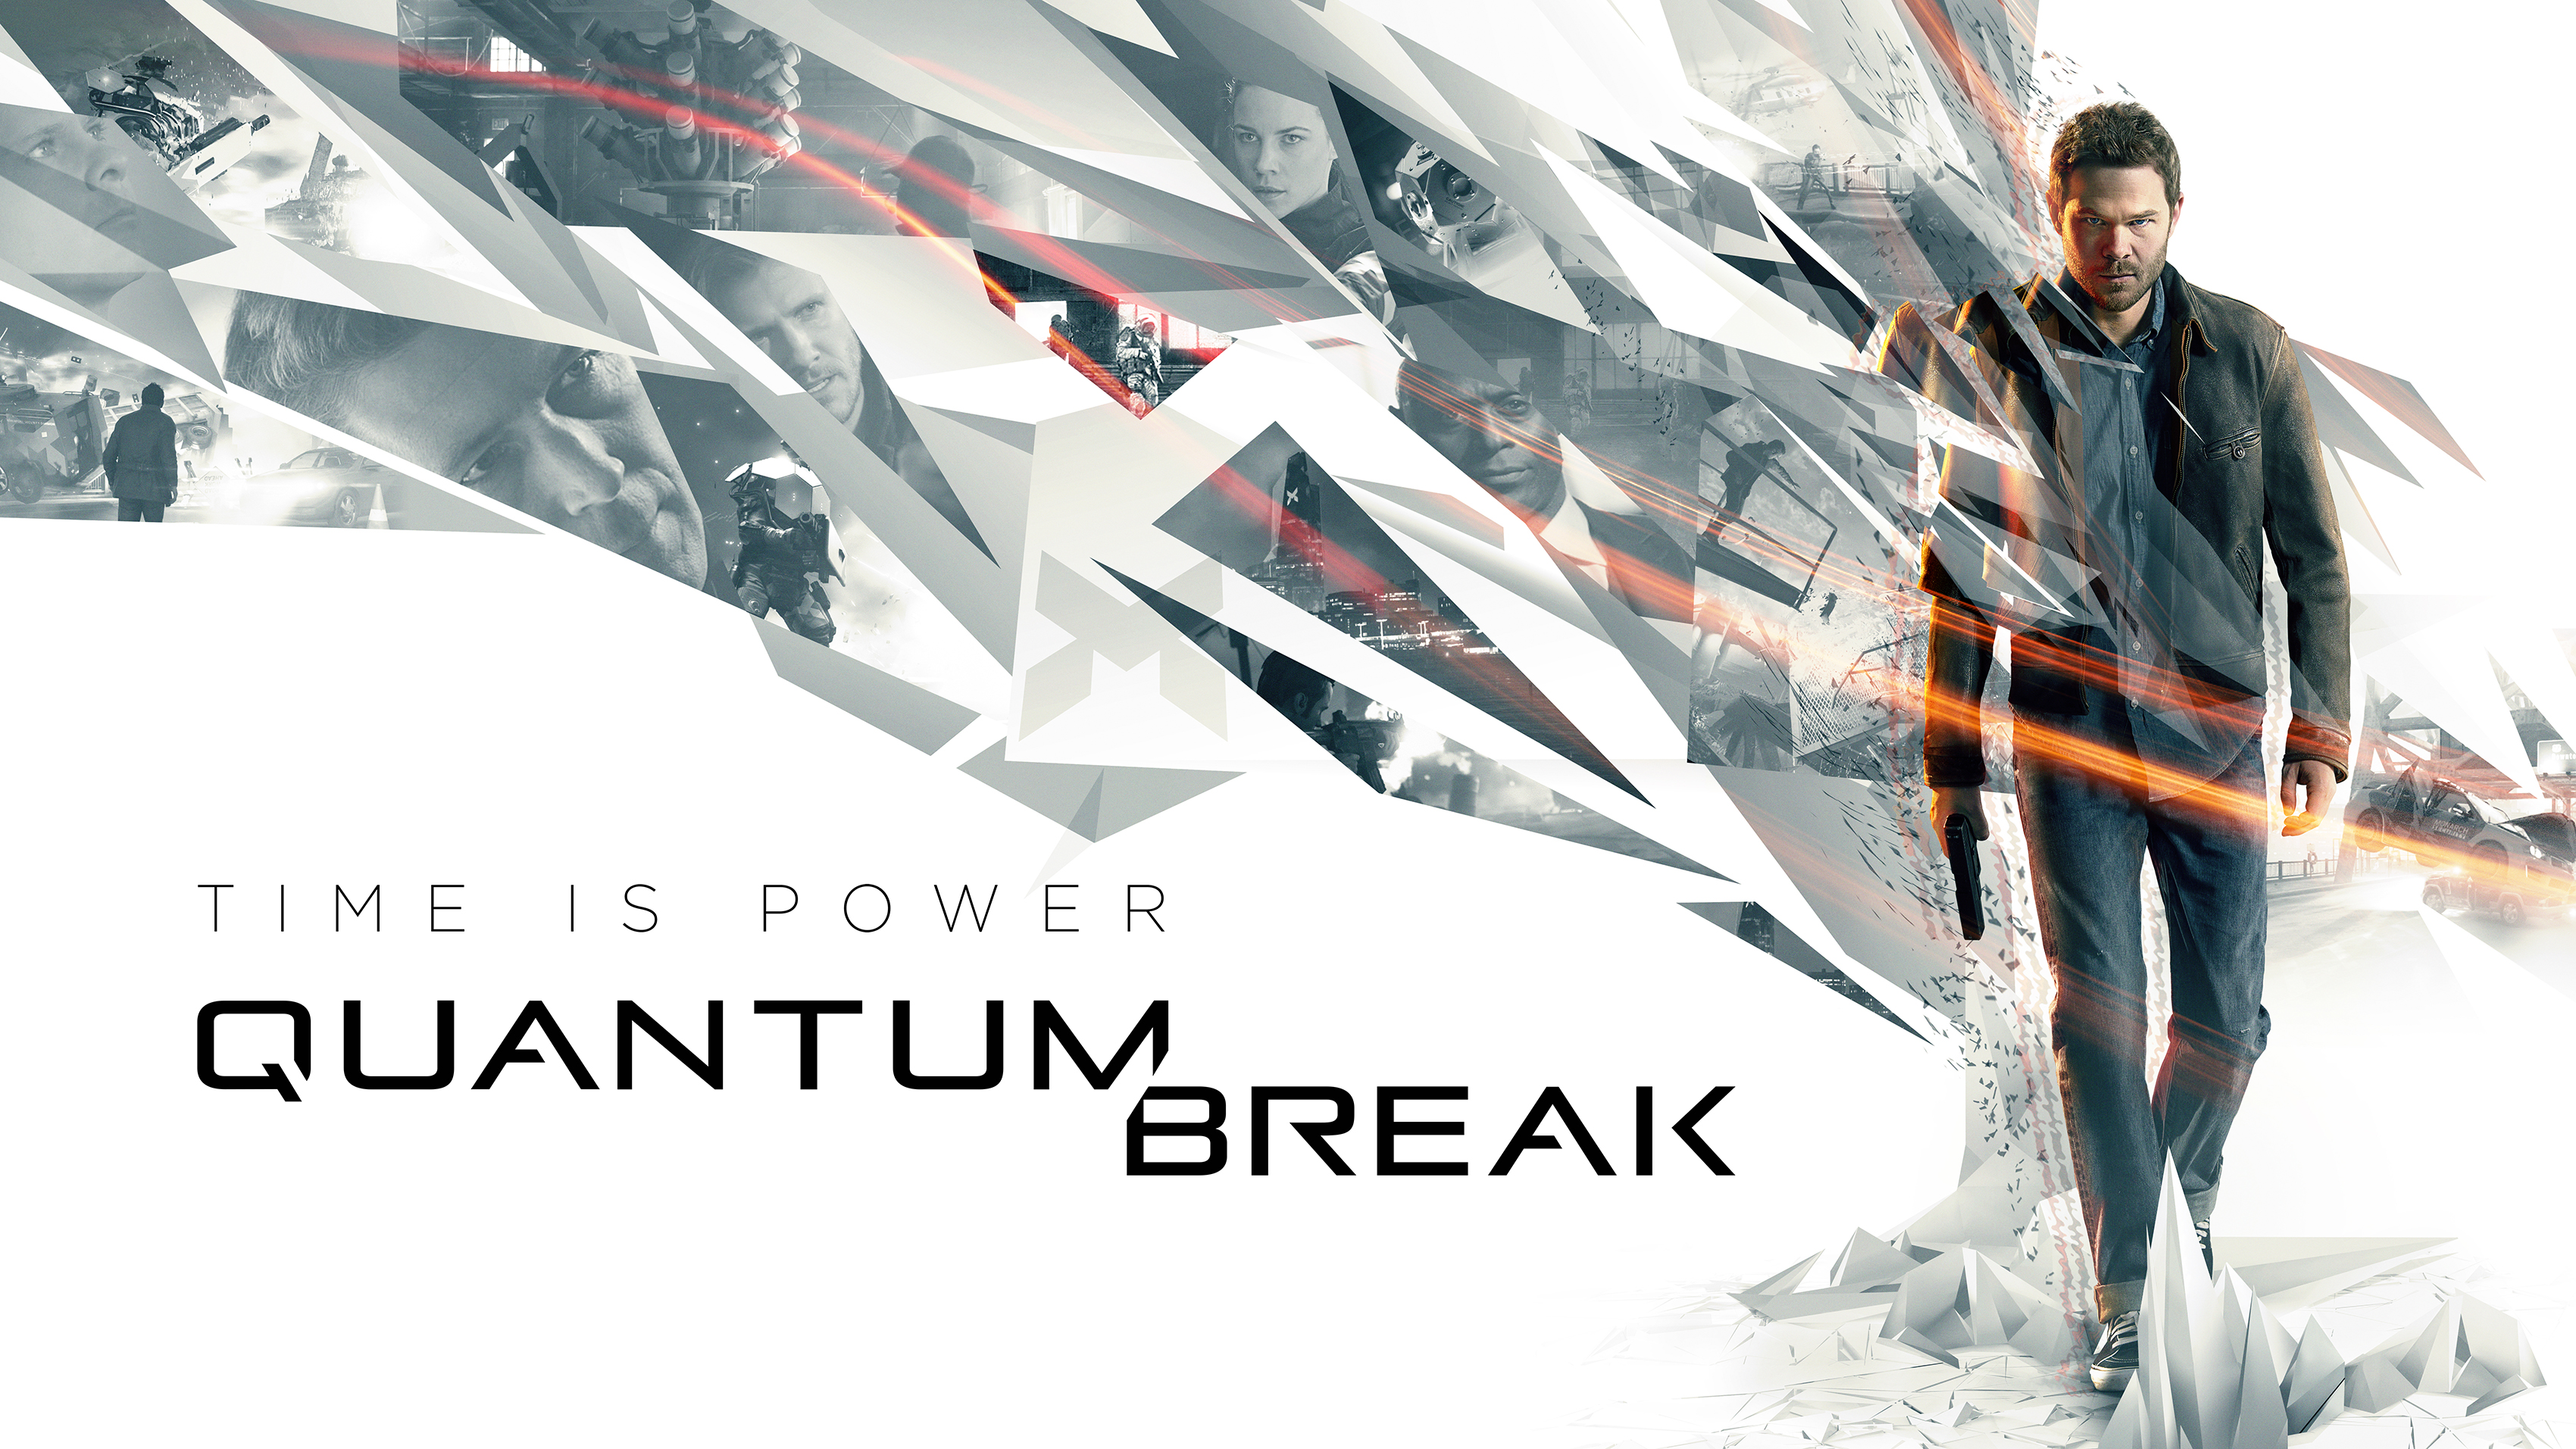 Quantum Break: Interview with Jacqueline Piñol